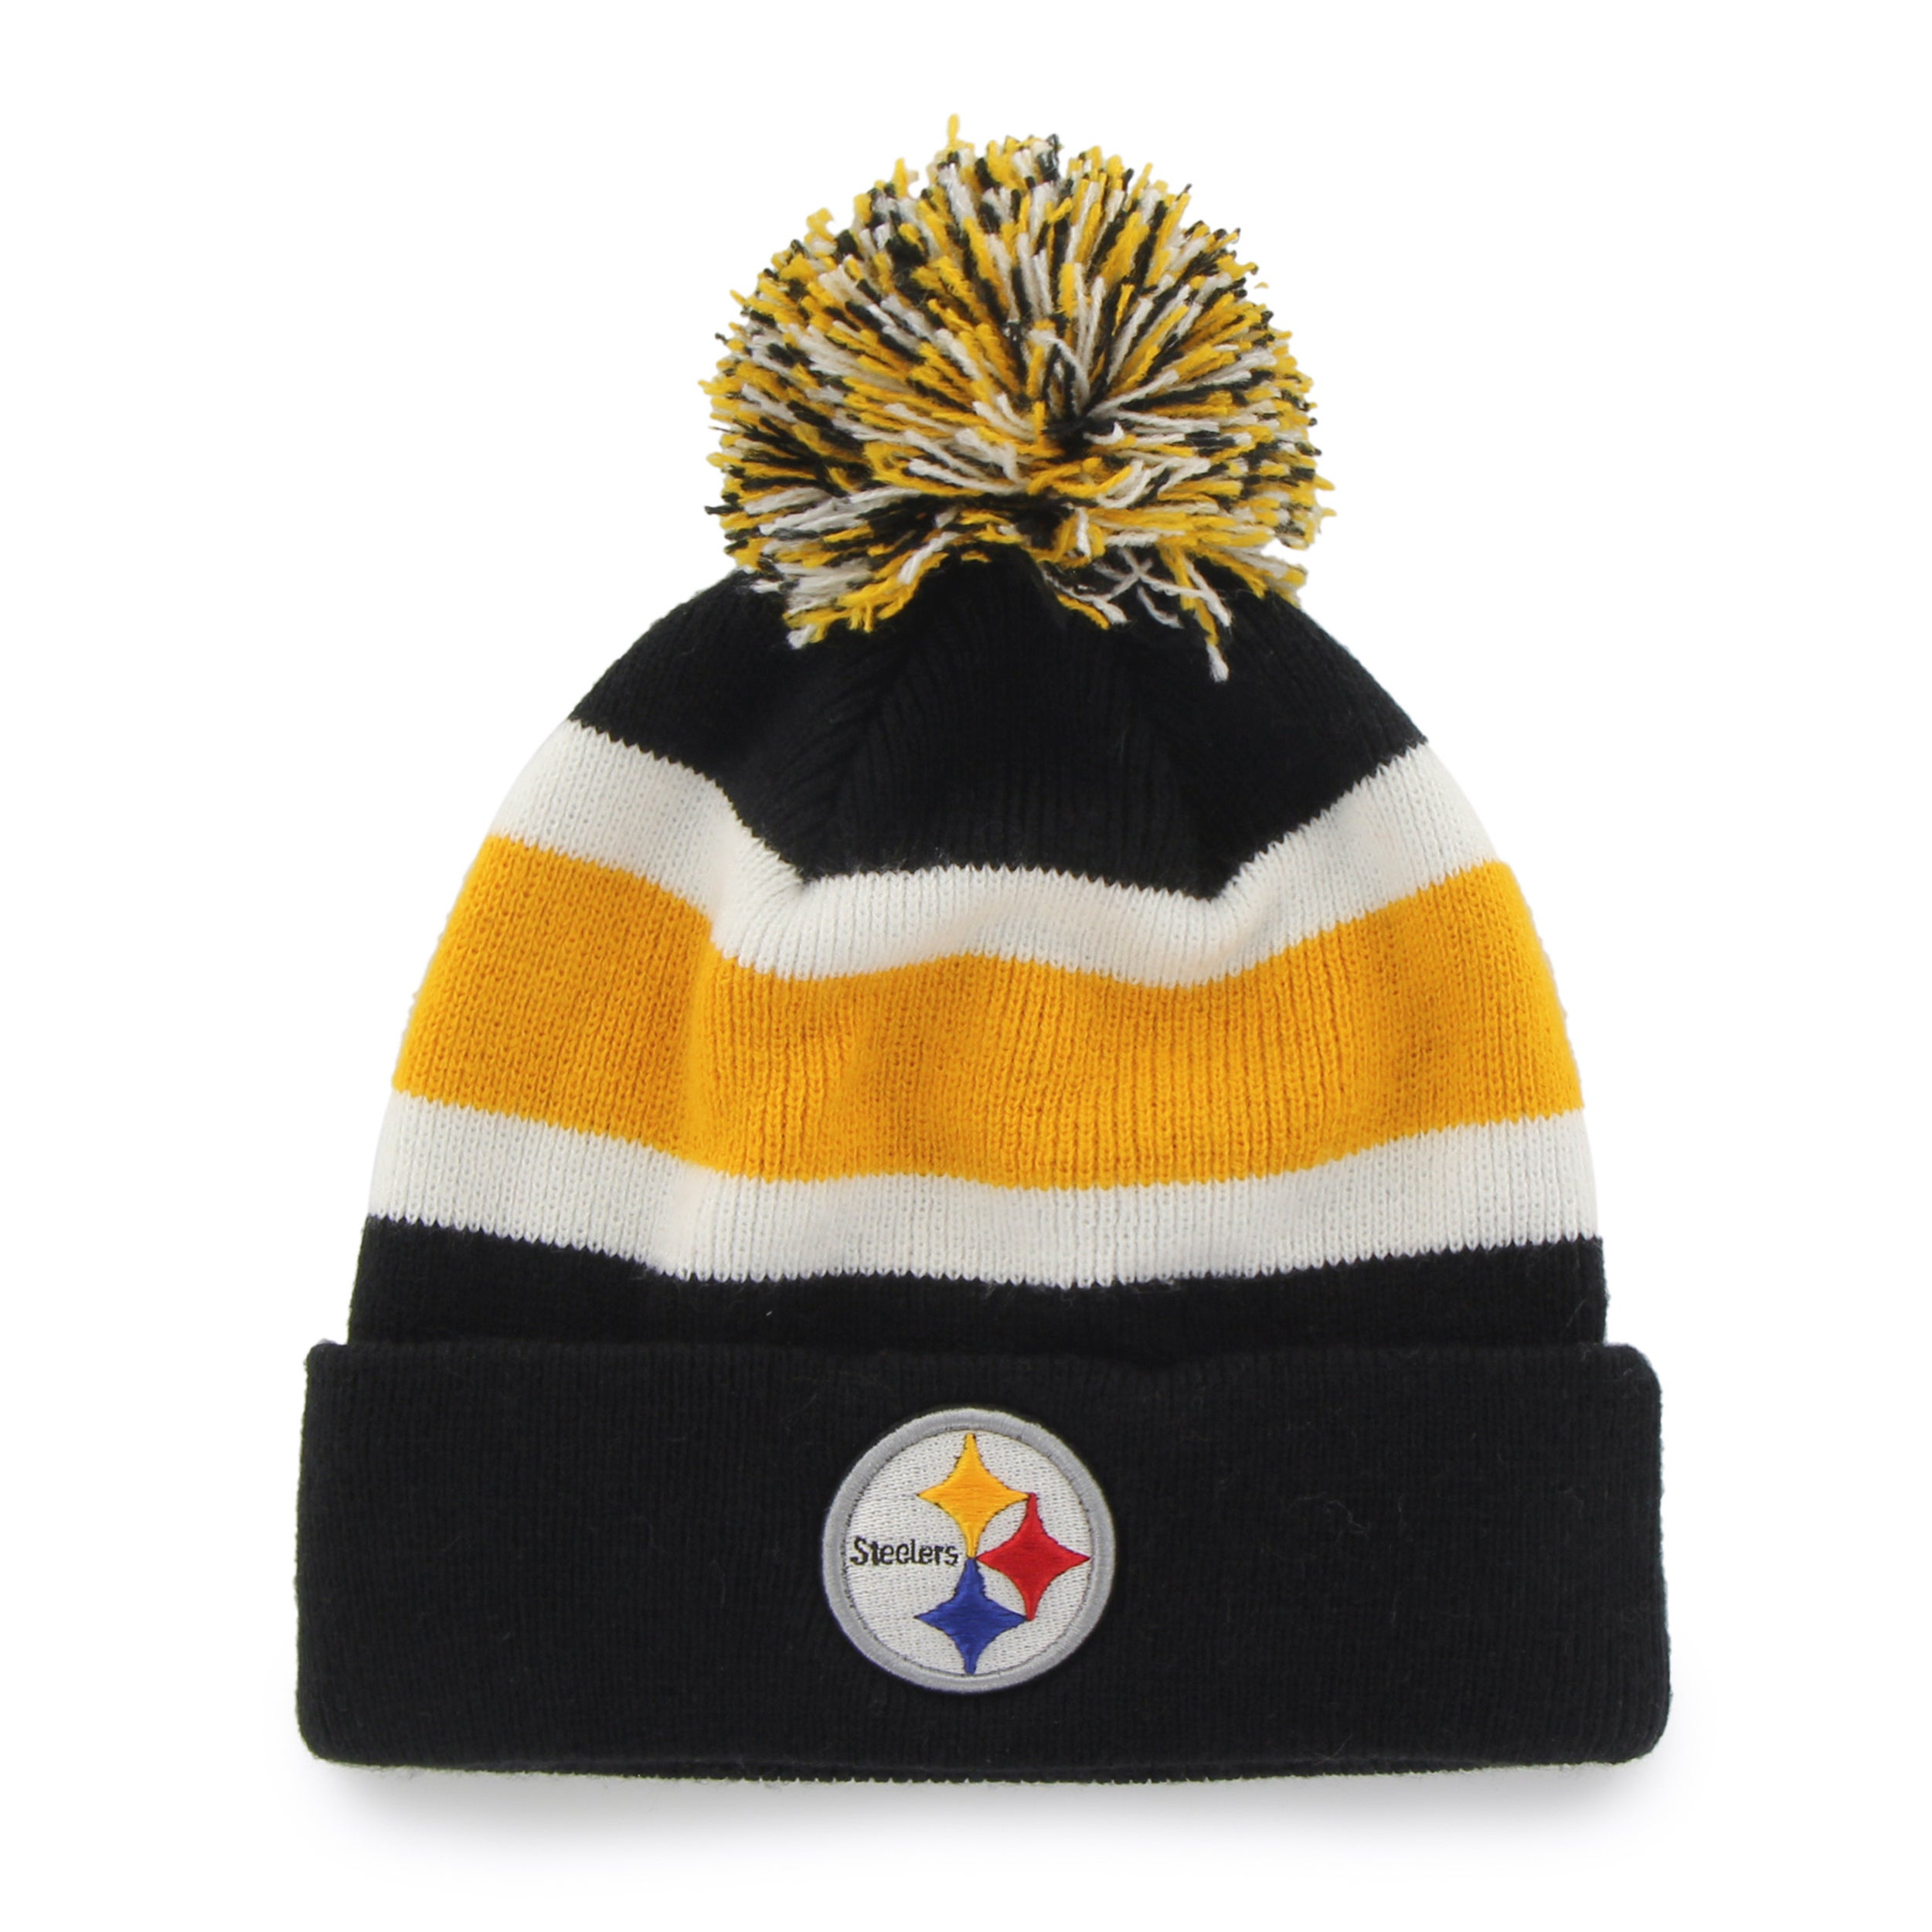 303194f4 47 Brand Pittsburgh Steelers Breakaway Beanie Hat - Black